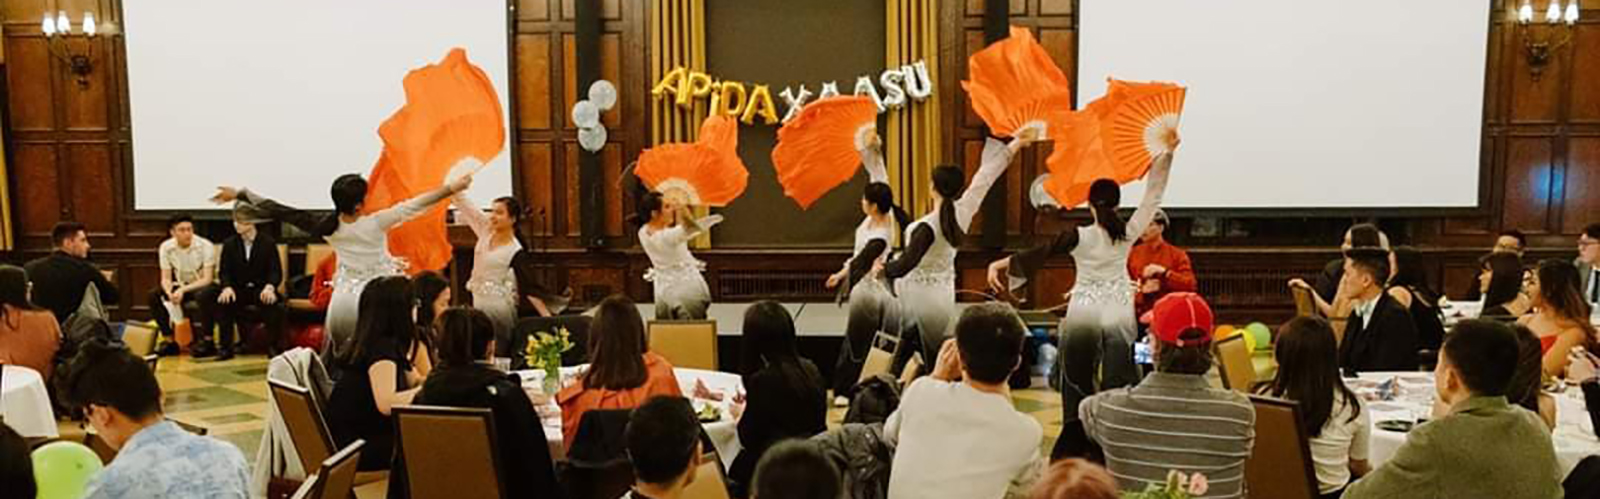 APIDA students watch dancers in white and black costumes performance with large orange fans perform